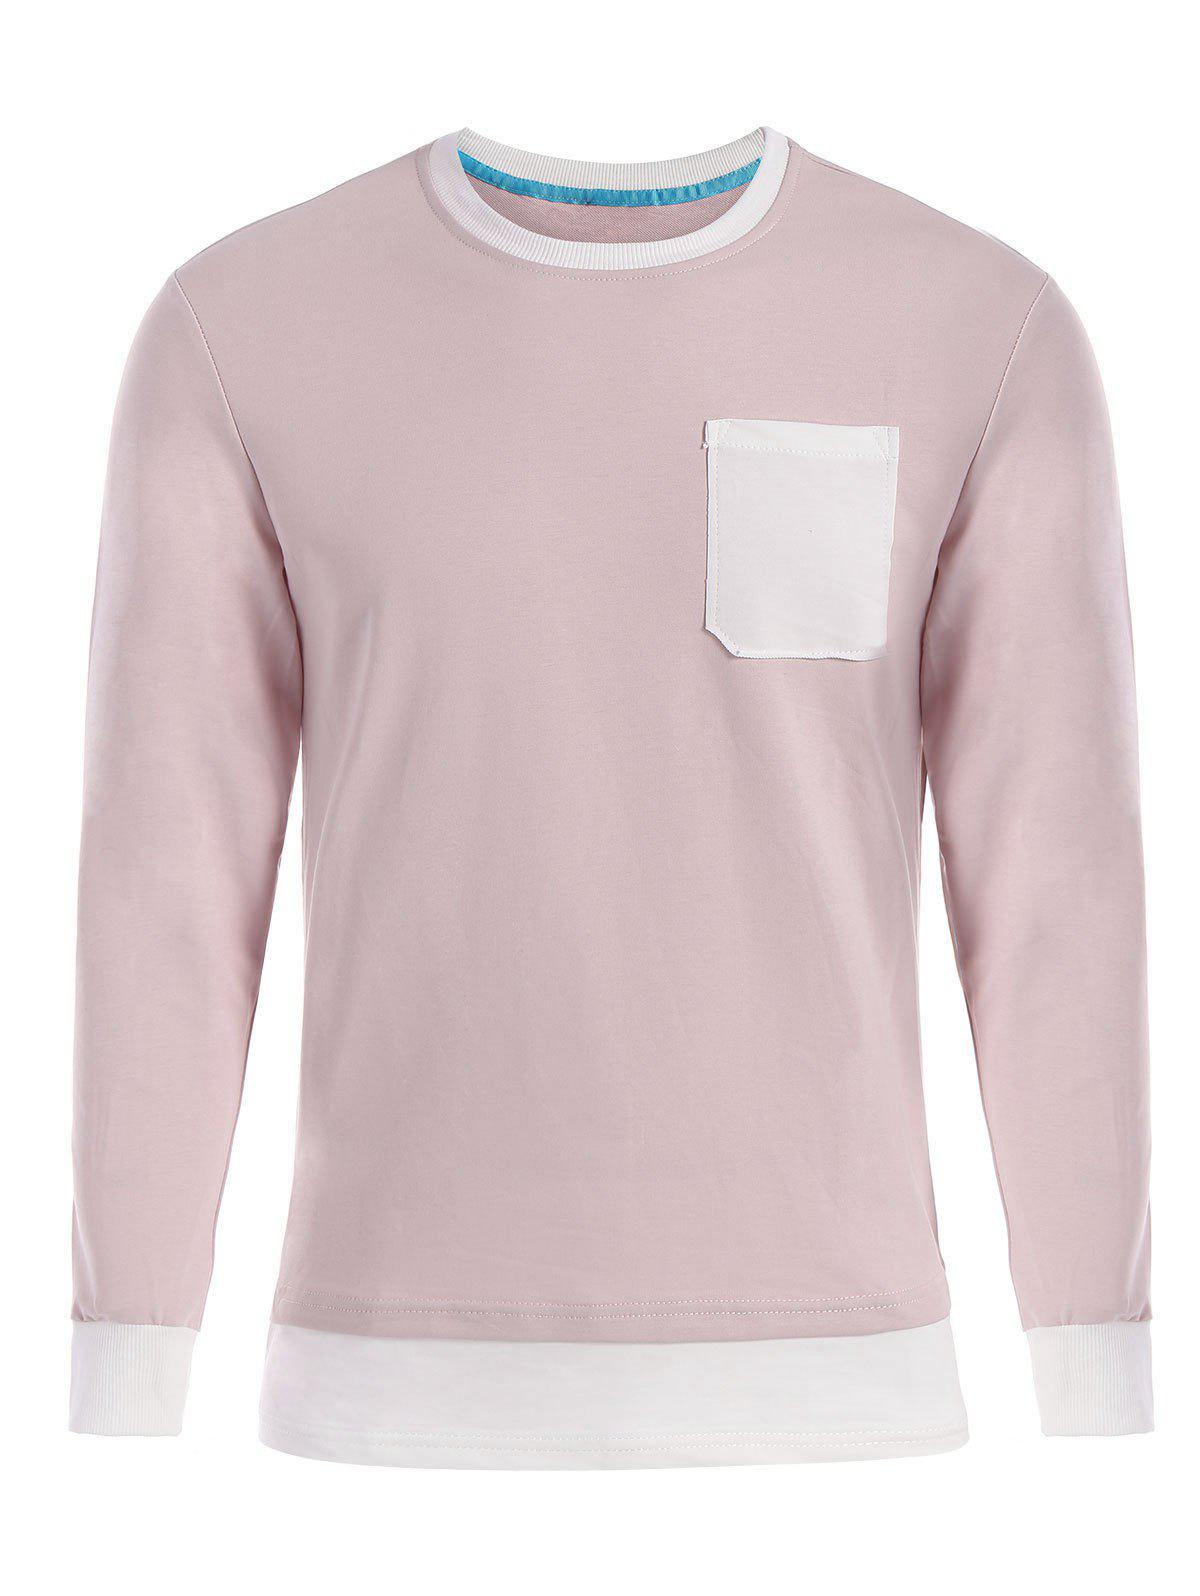 Contrast Trim Front Pocket Long Sleeve T-shirt - SHALLOW PINK 2XL